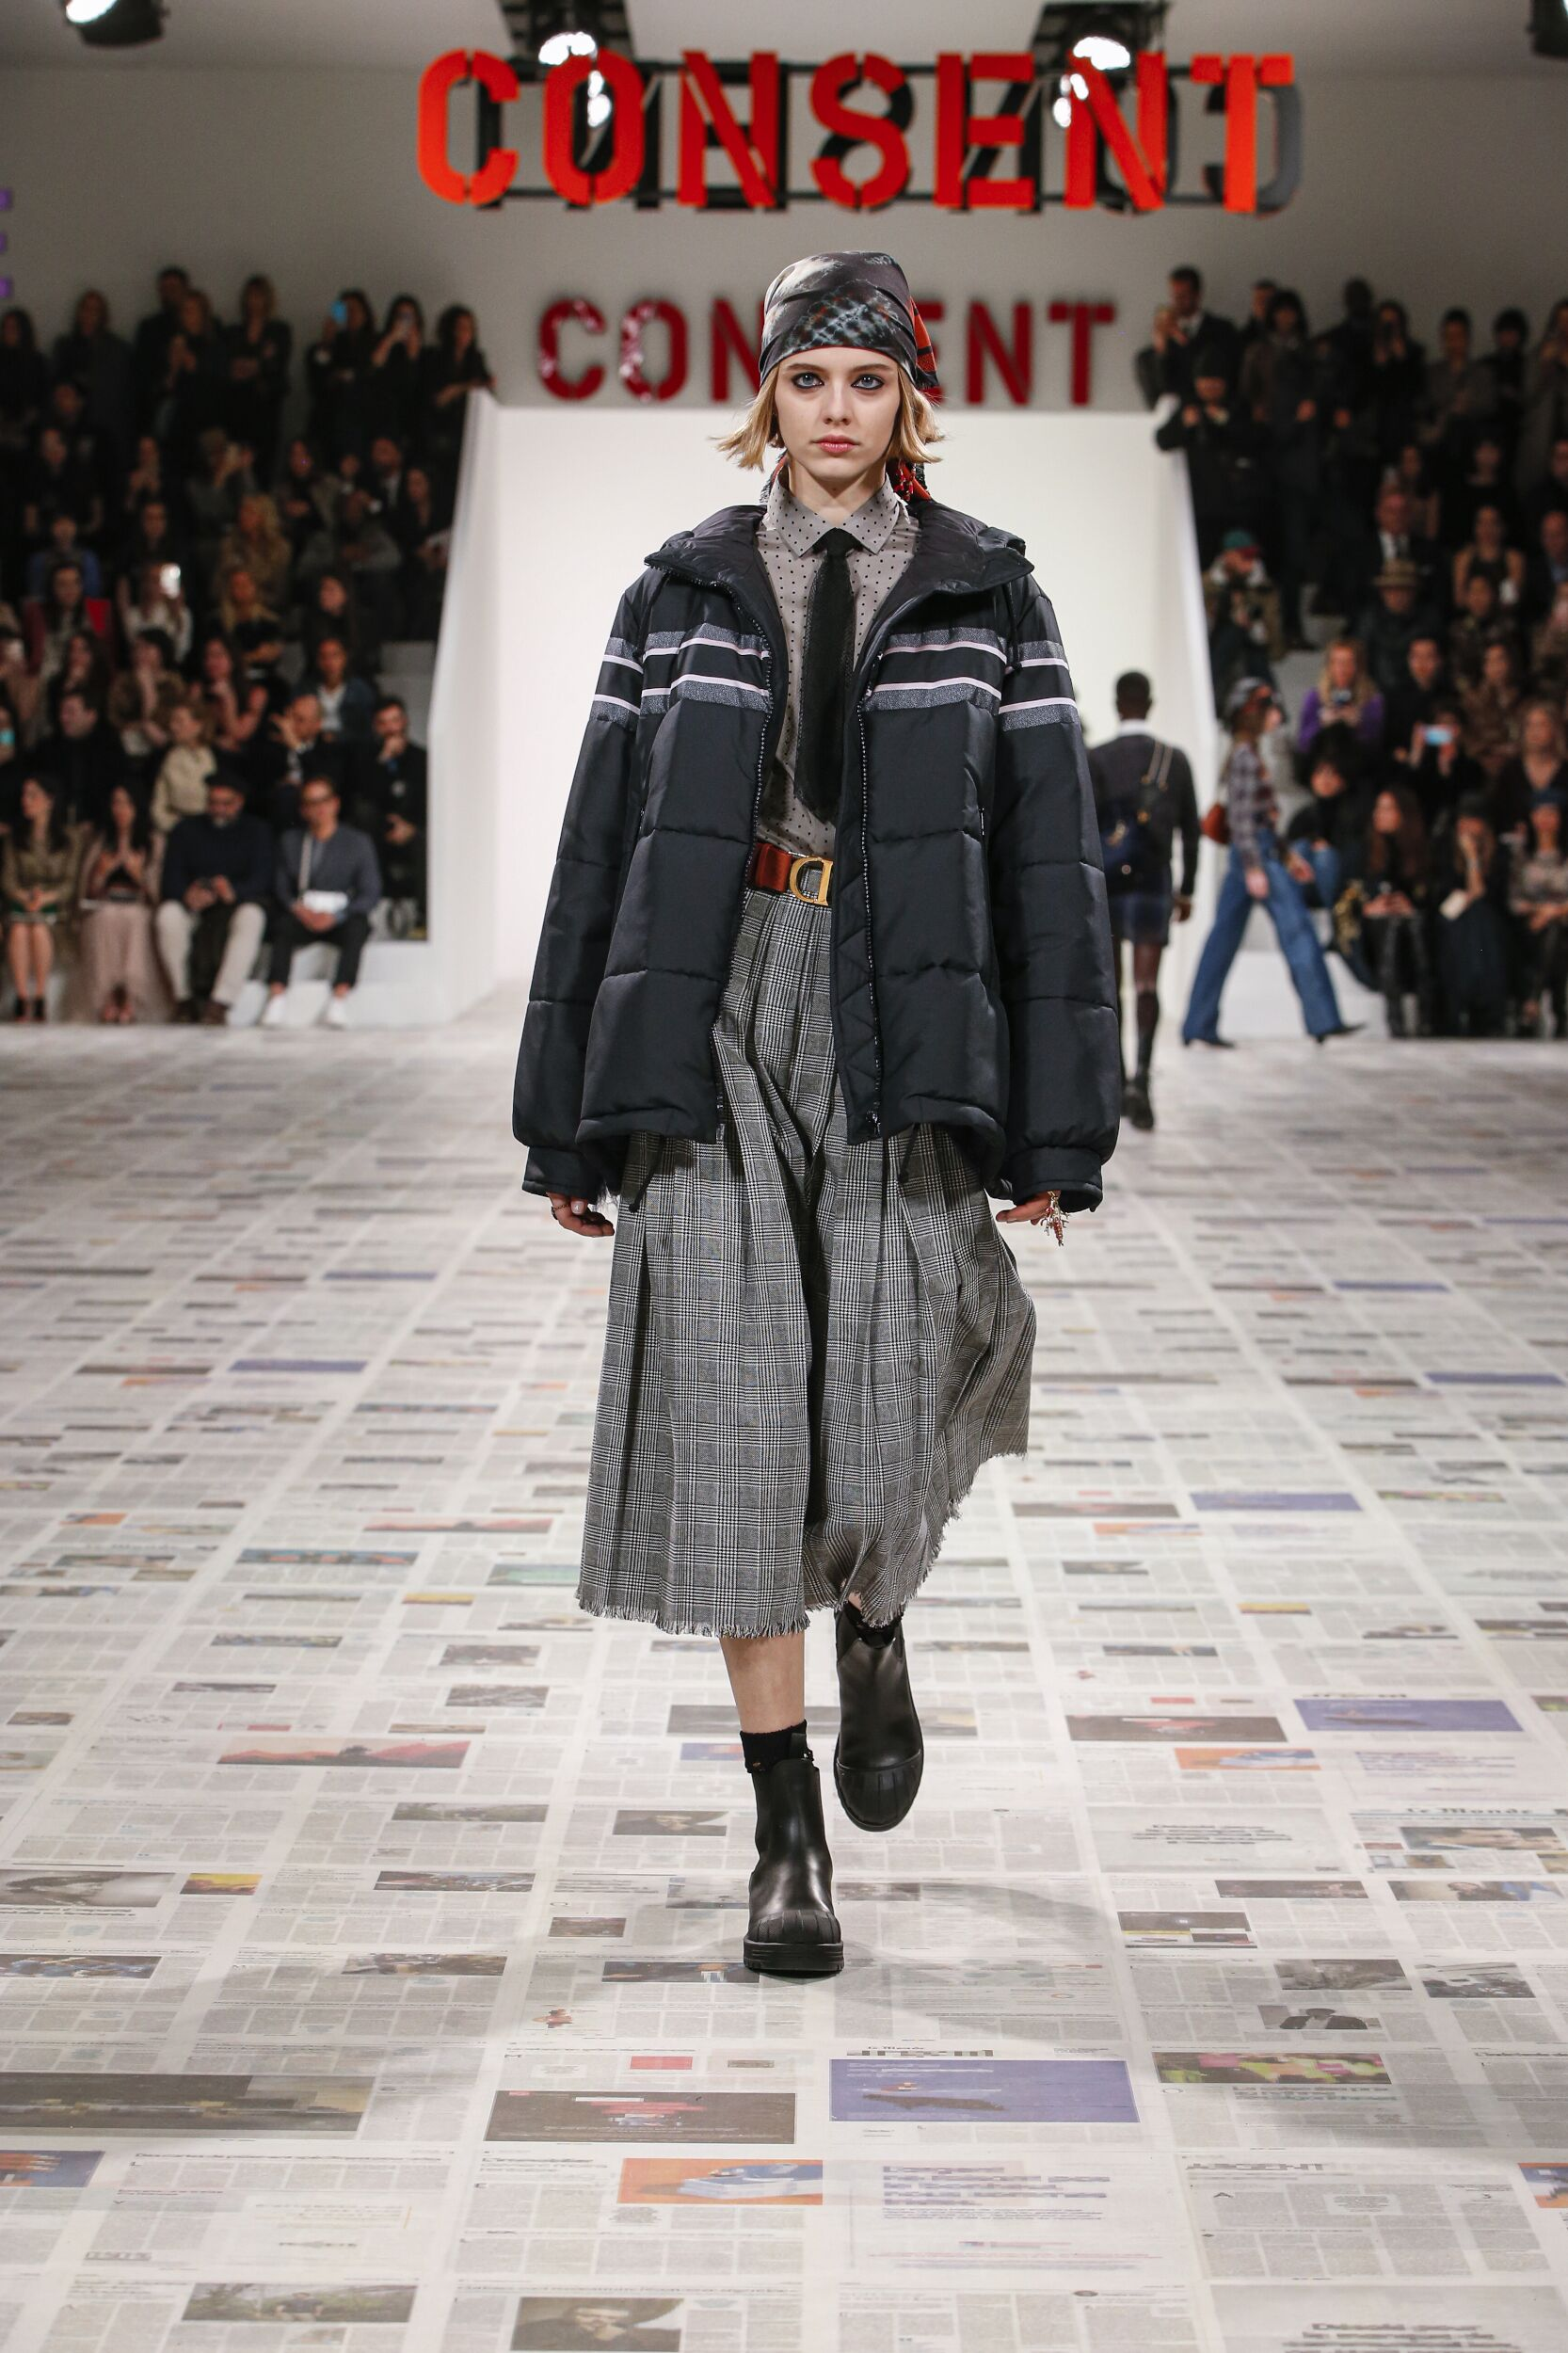 Dior Womenswear Collection Trends Winter